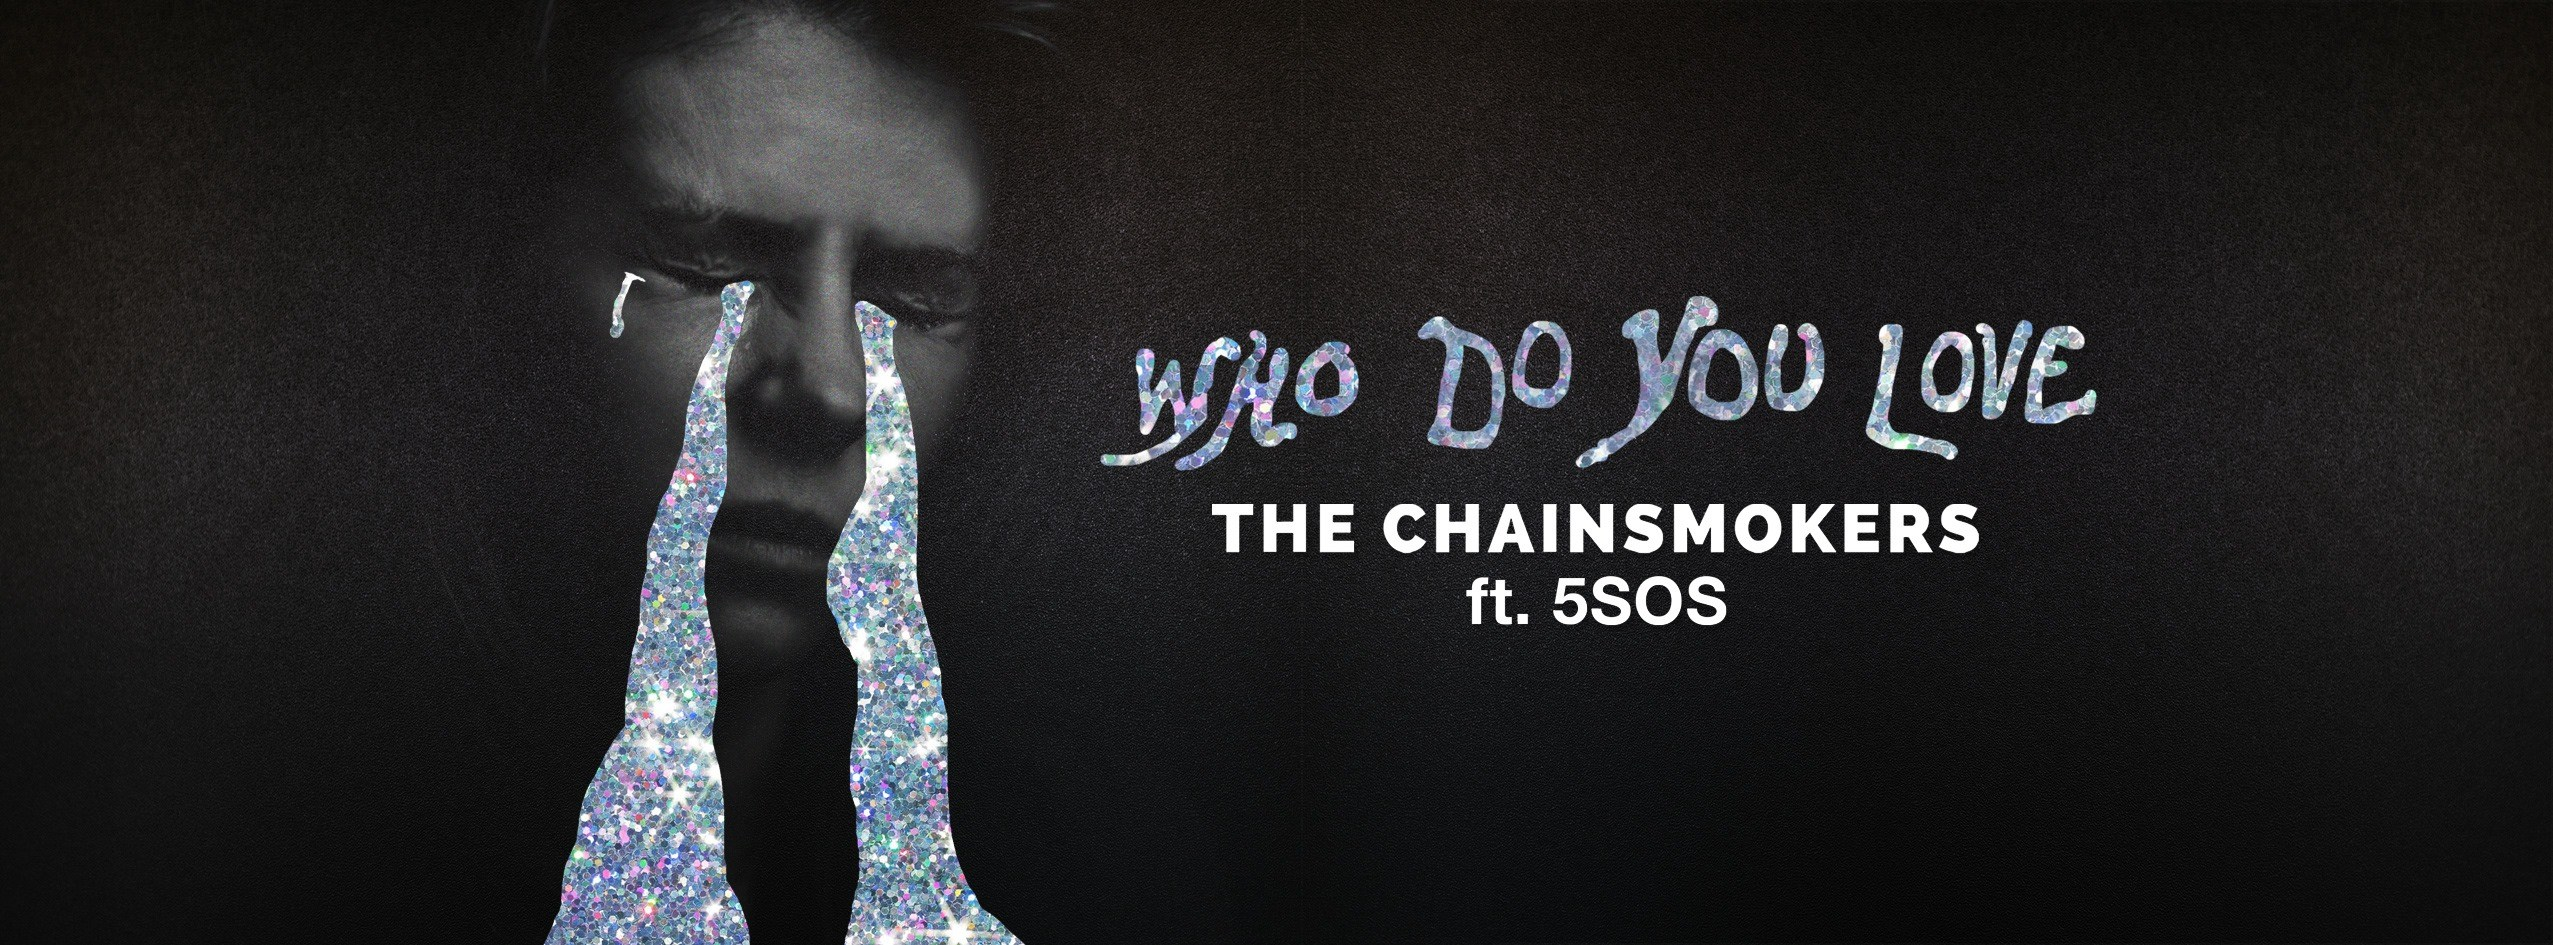 The Chainsmokers uneixen forces amb 5 Seconds of Summer a 'Who Do You Love'